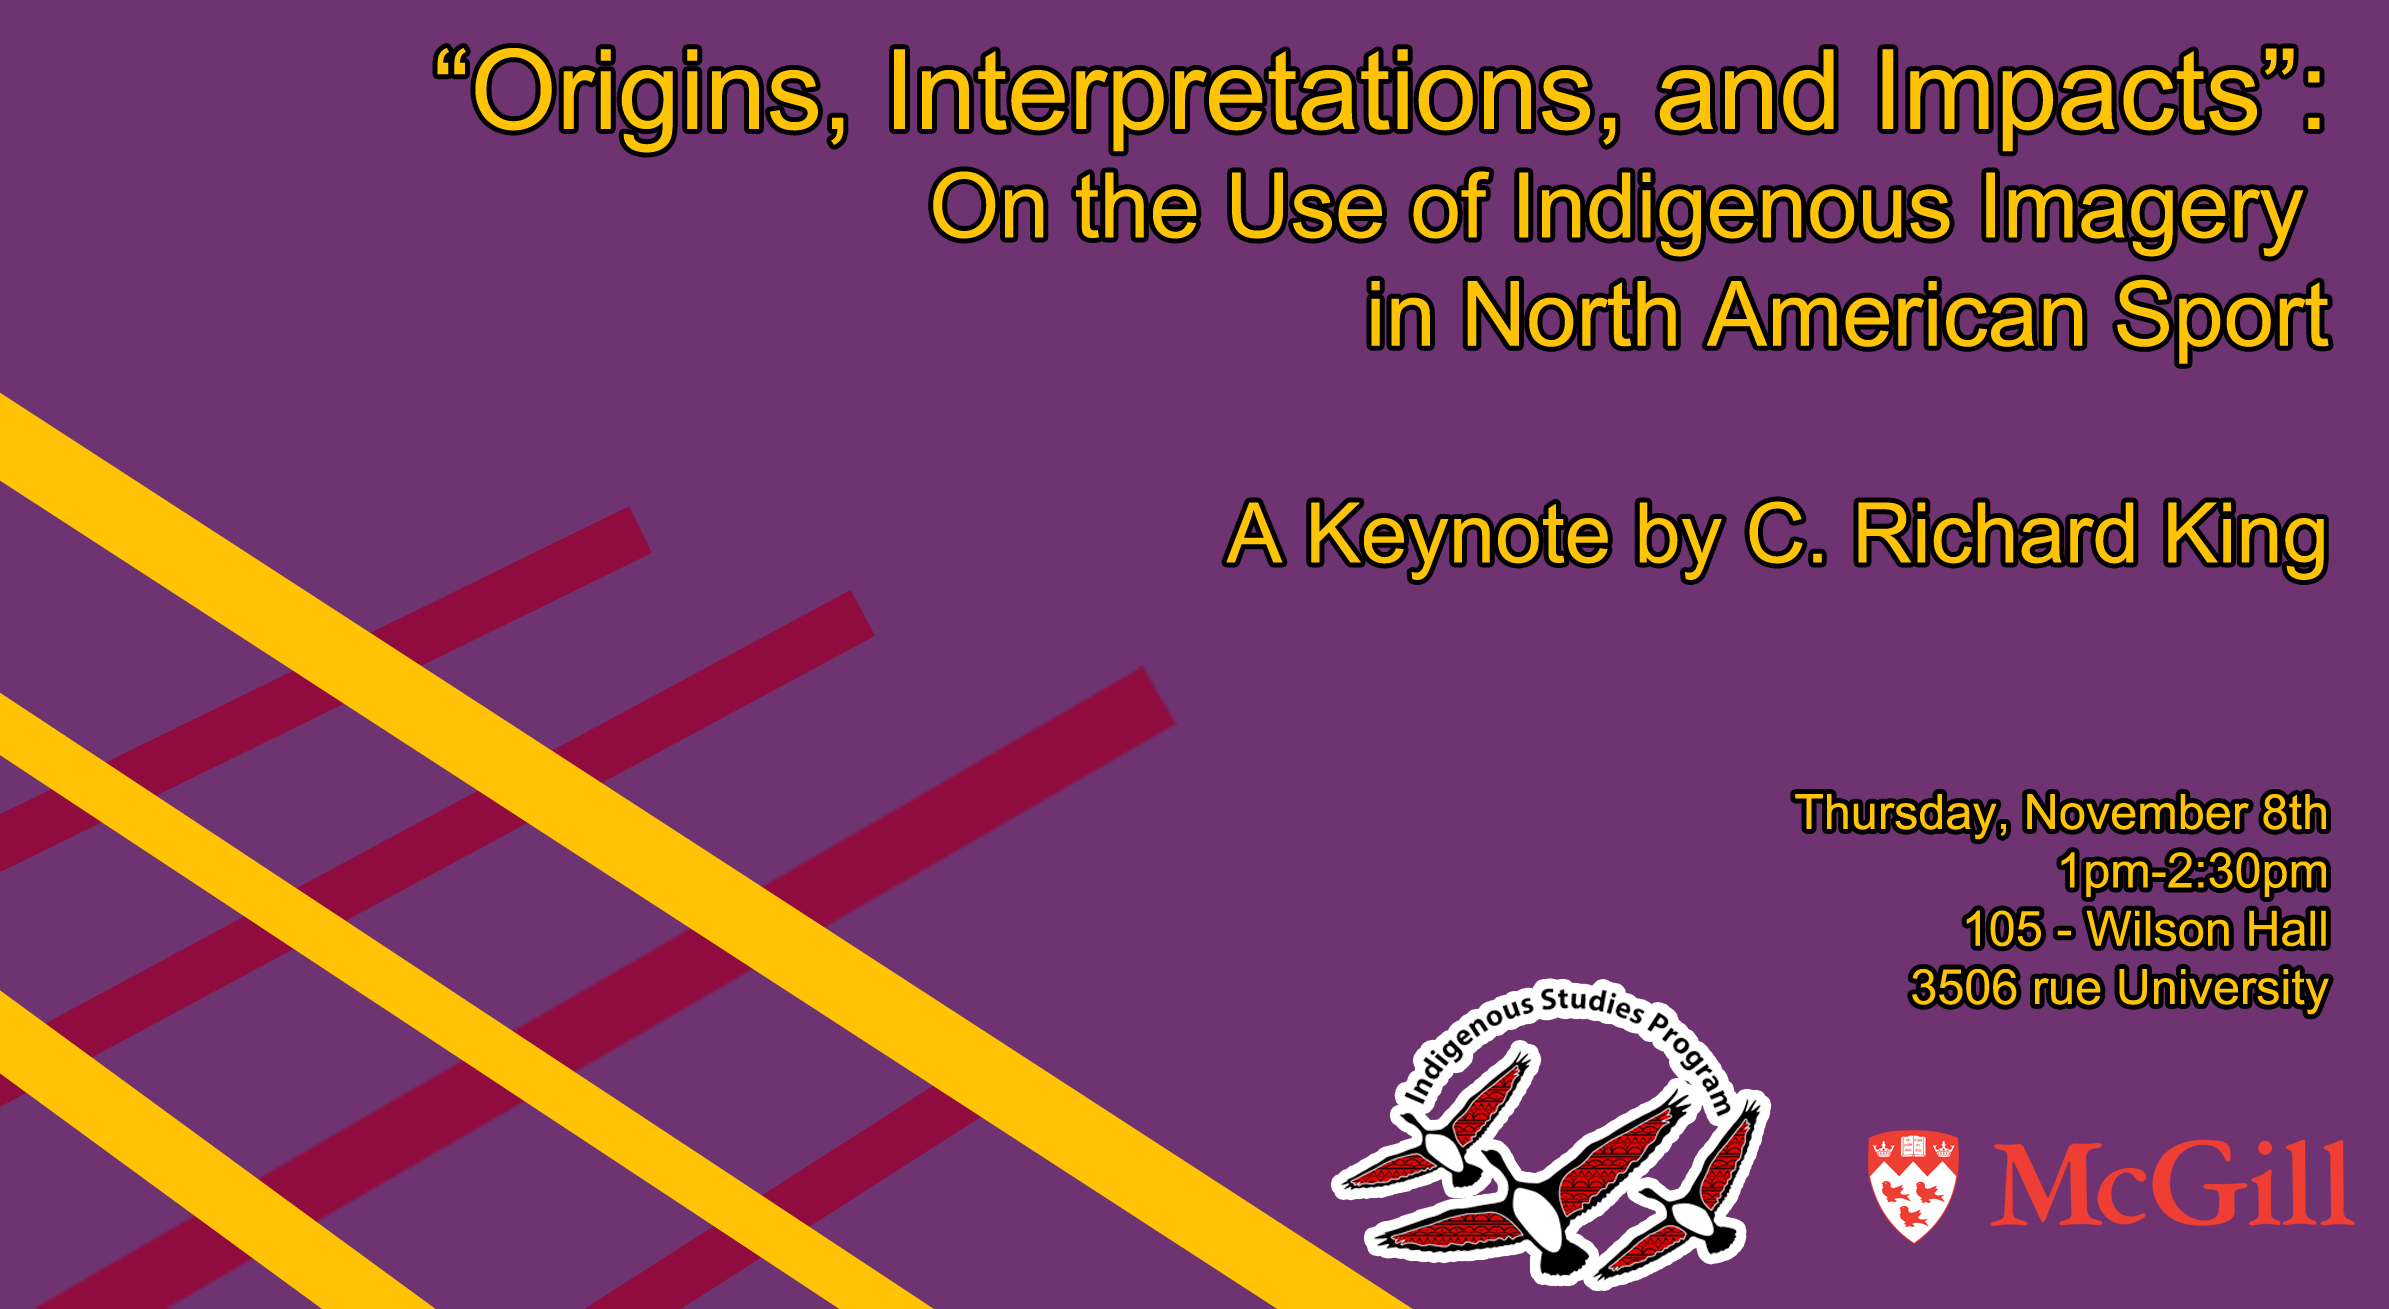 """Origins, Interpretations, and Impacts"": On the Use of Indigenous Imagery in North American Sport A Keynote by C. Richard King  Thursday, November 8th 1pm-2:30pm 105 - Wilson Hall 3506 rue University"